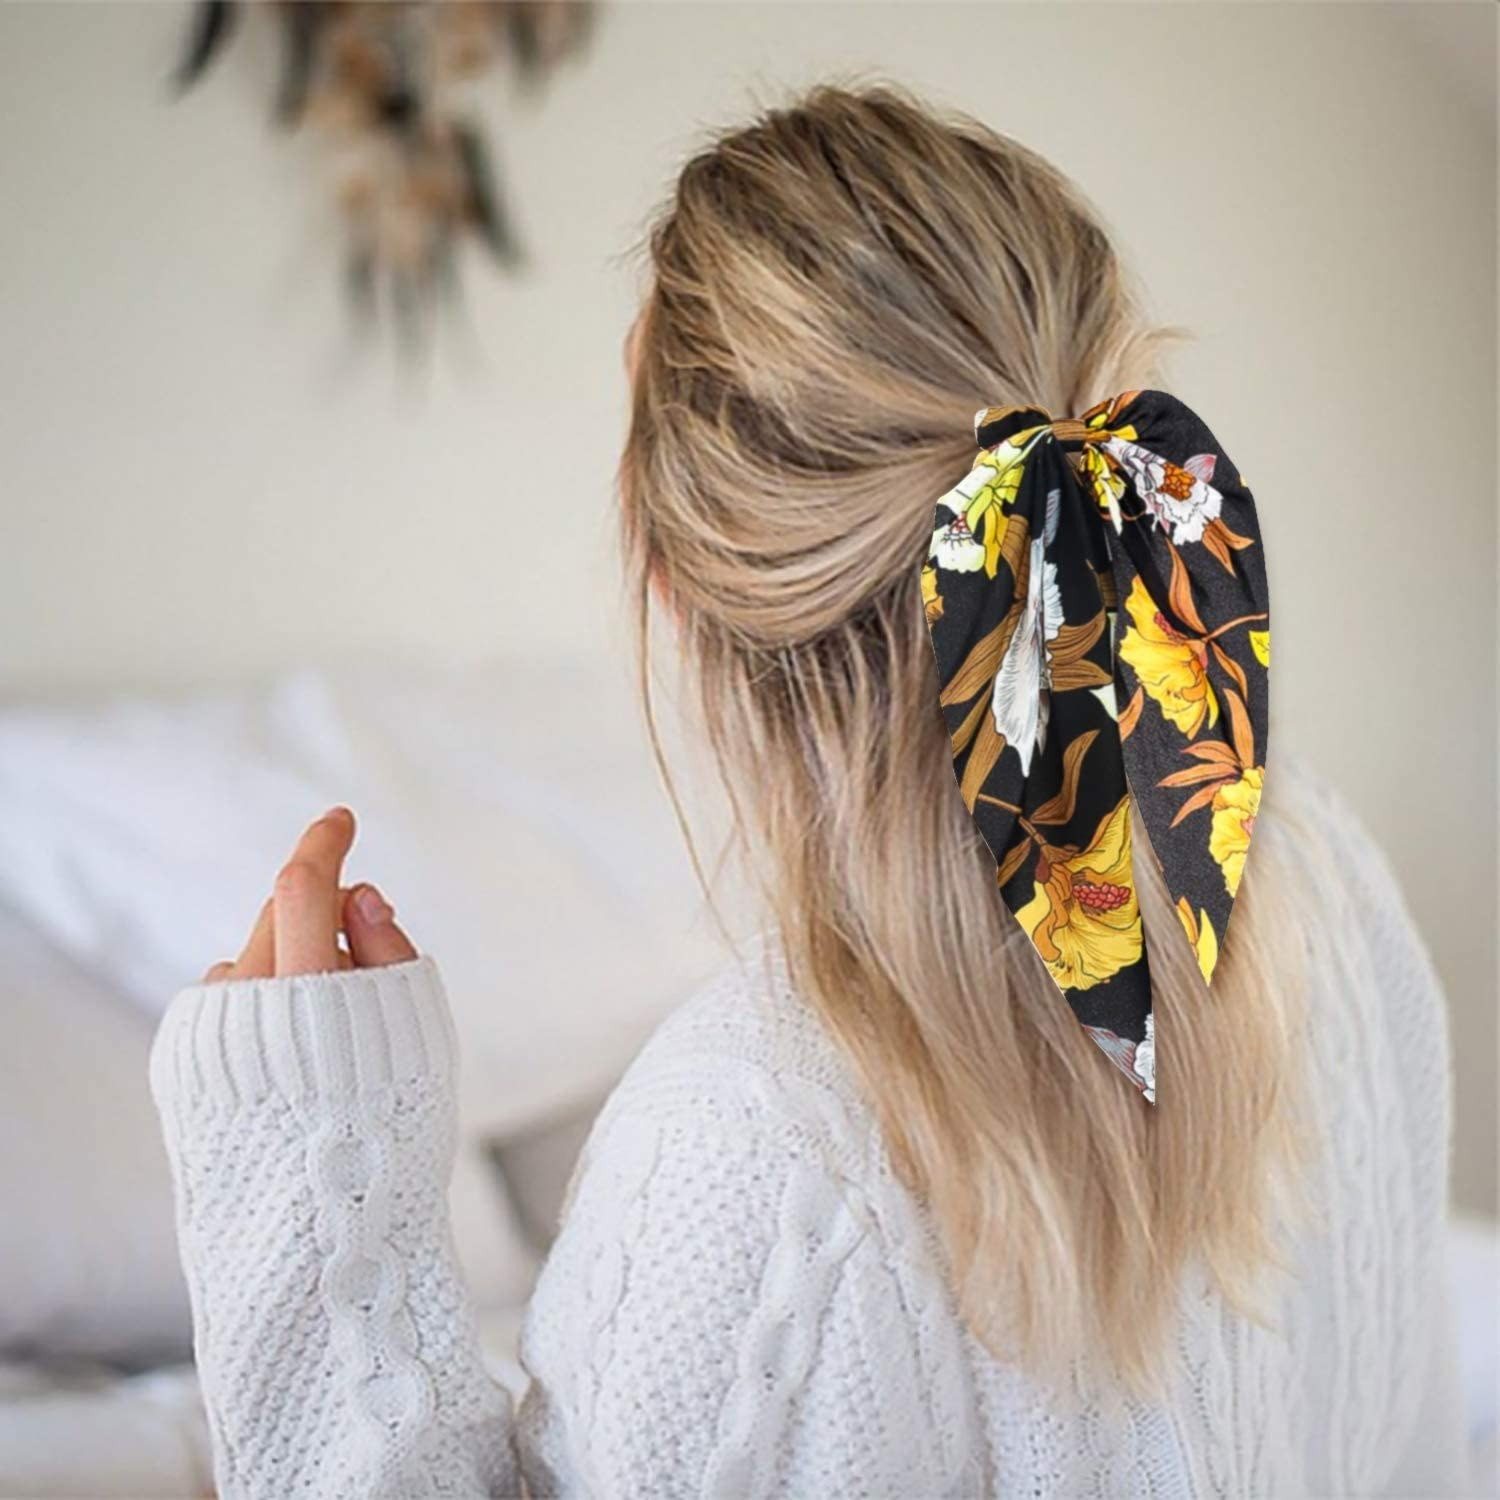 A person with a bow scrunchie in their hair